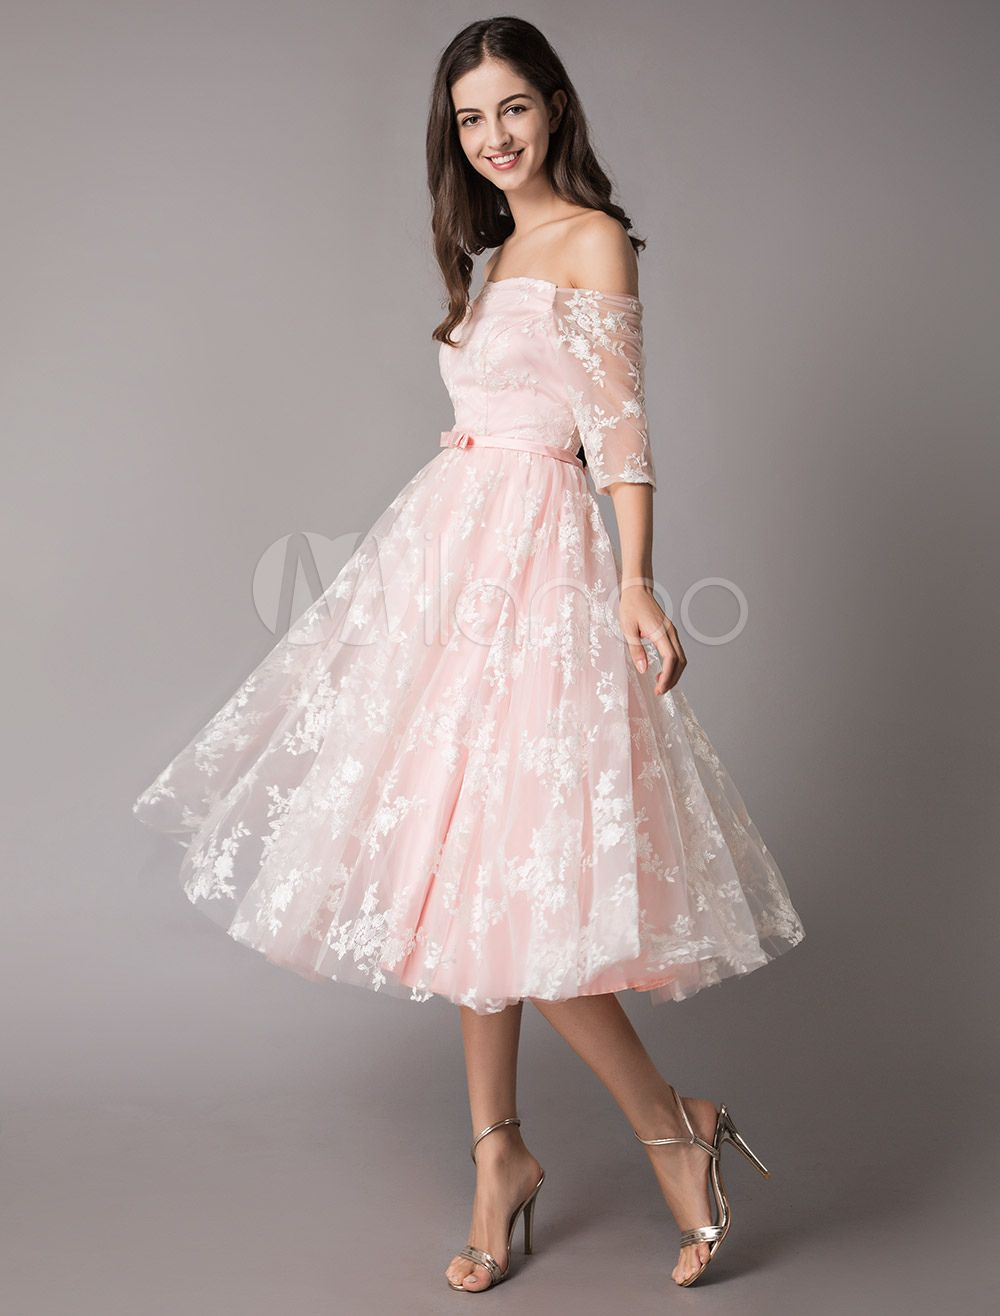 55aa4124f3a45 Lace Cocktail Dresses Off The Shoulder Soft Pink Half Sleeve Short ...